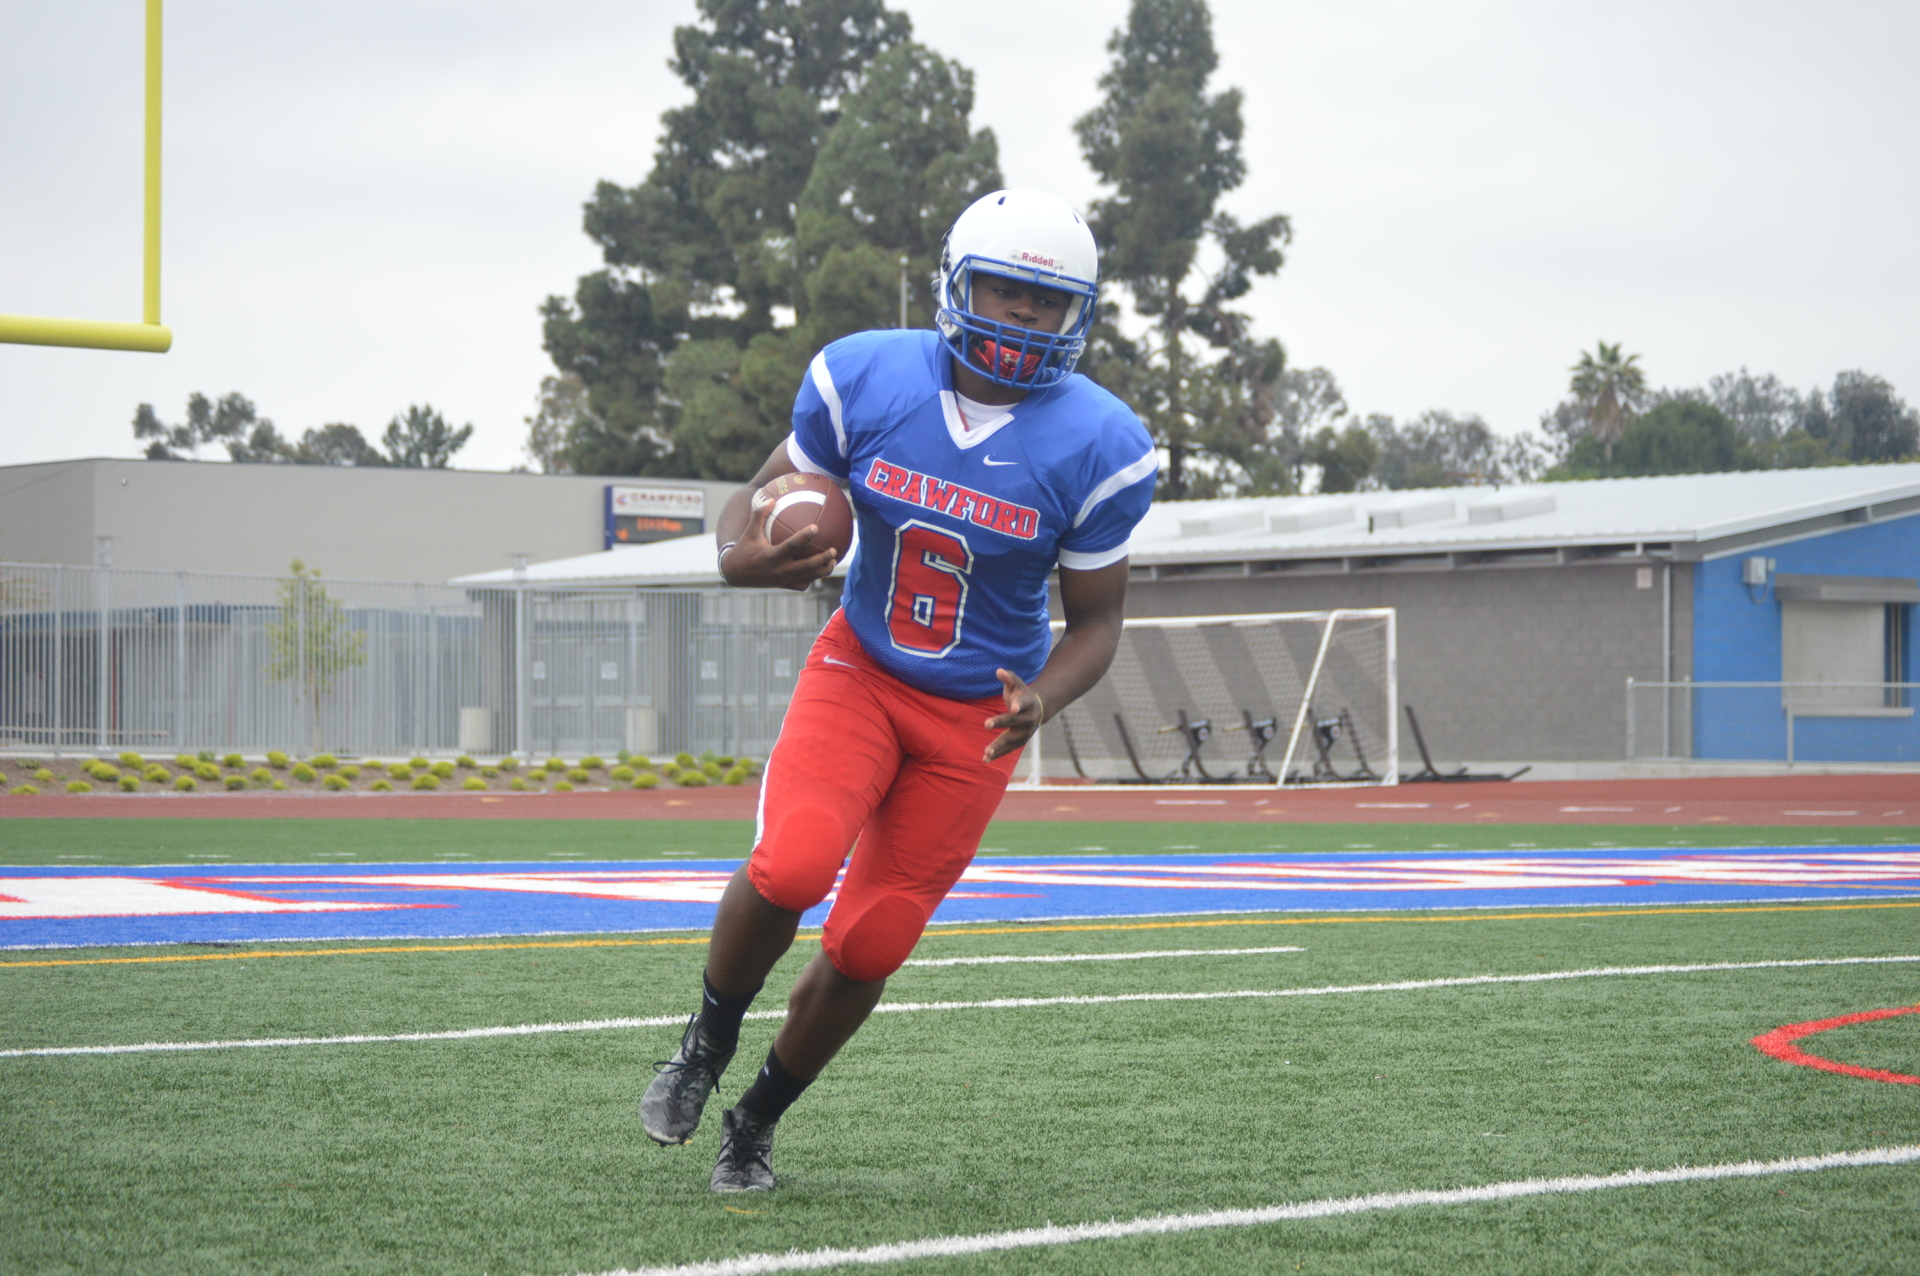 Crawford High School - MLB- RB Marlow Jenkins